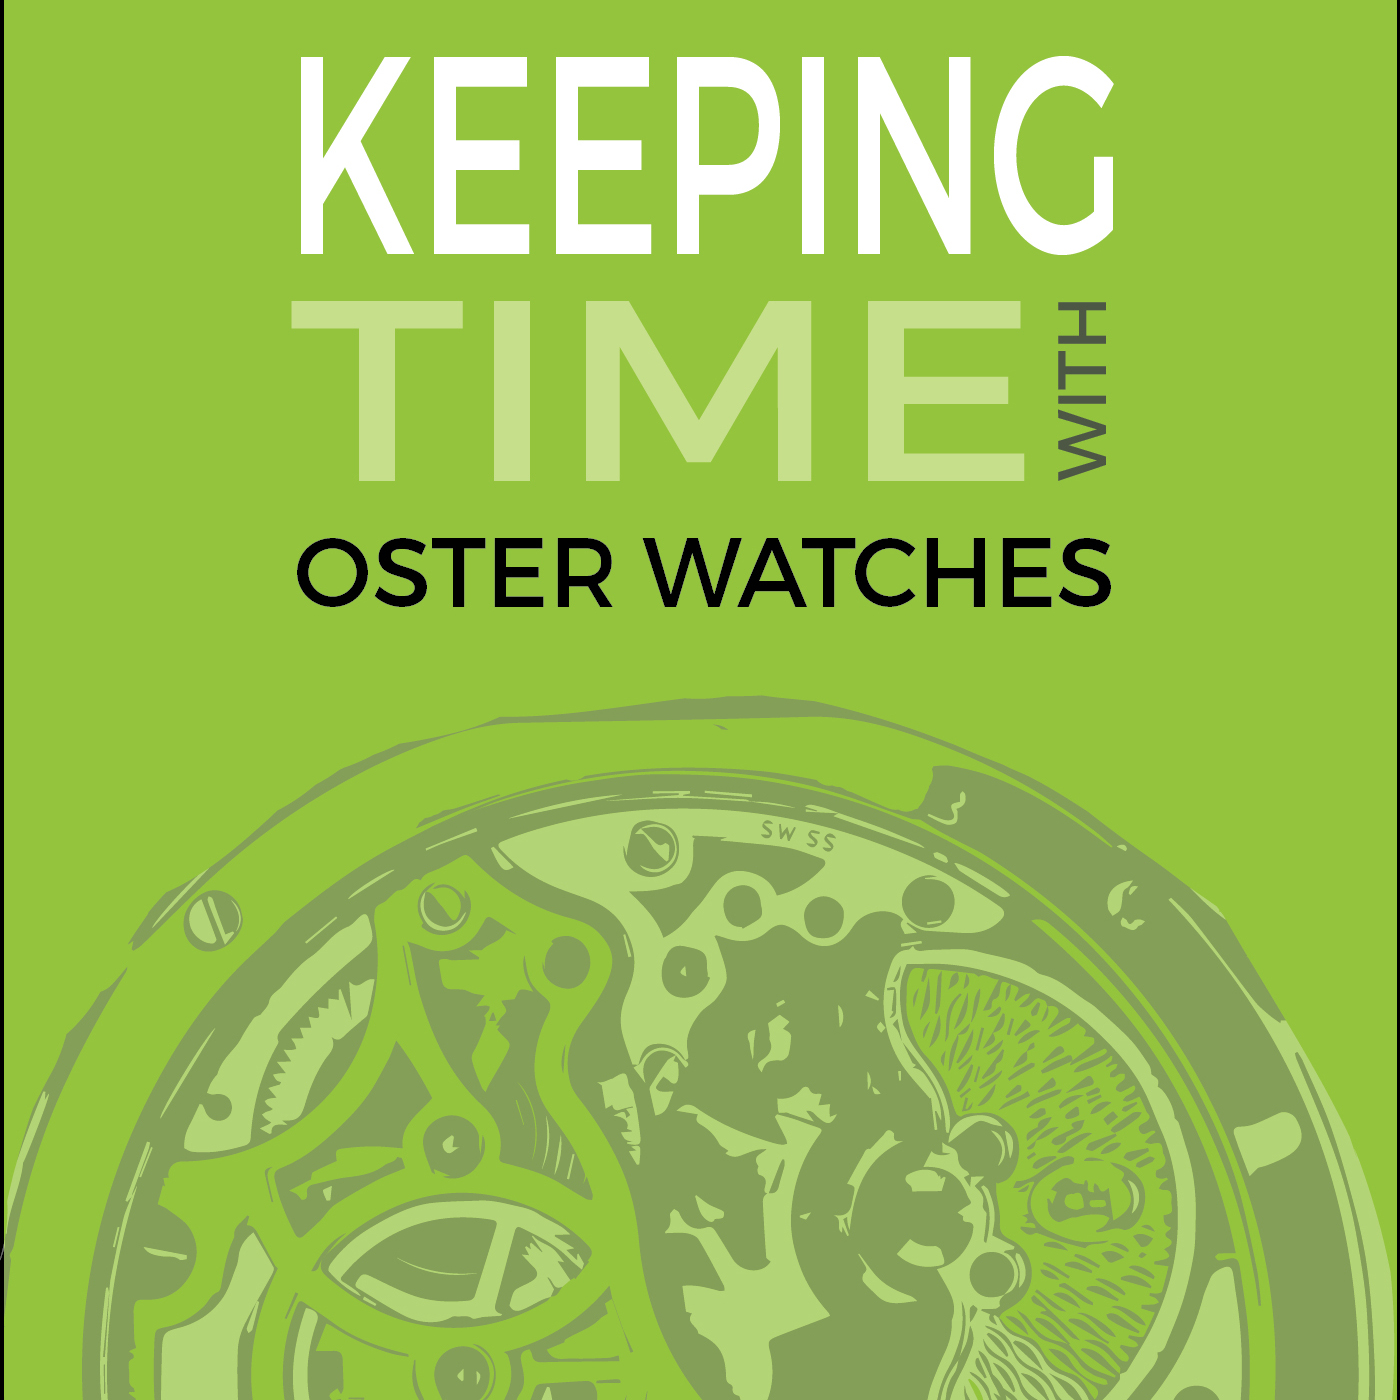 Keeping Time With Oster Watches show art